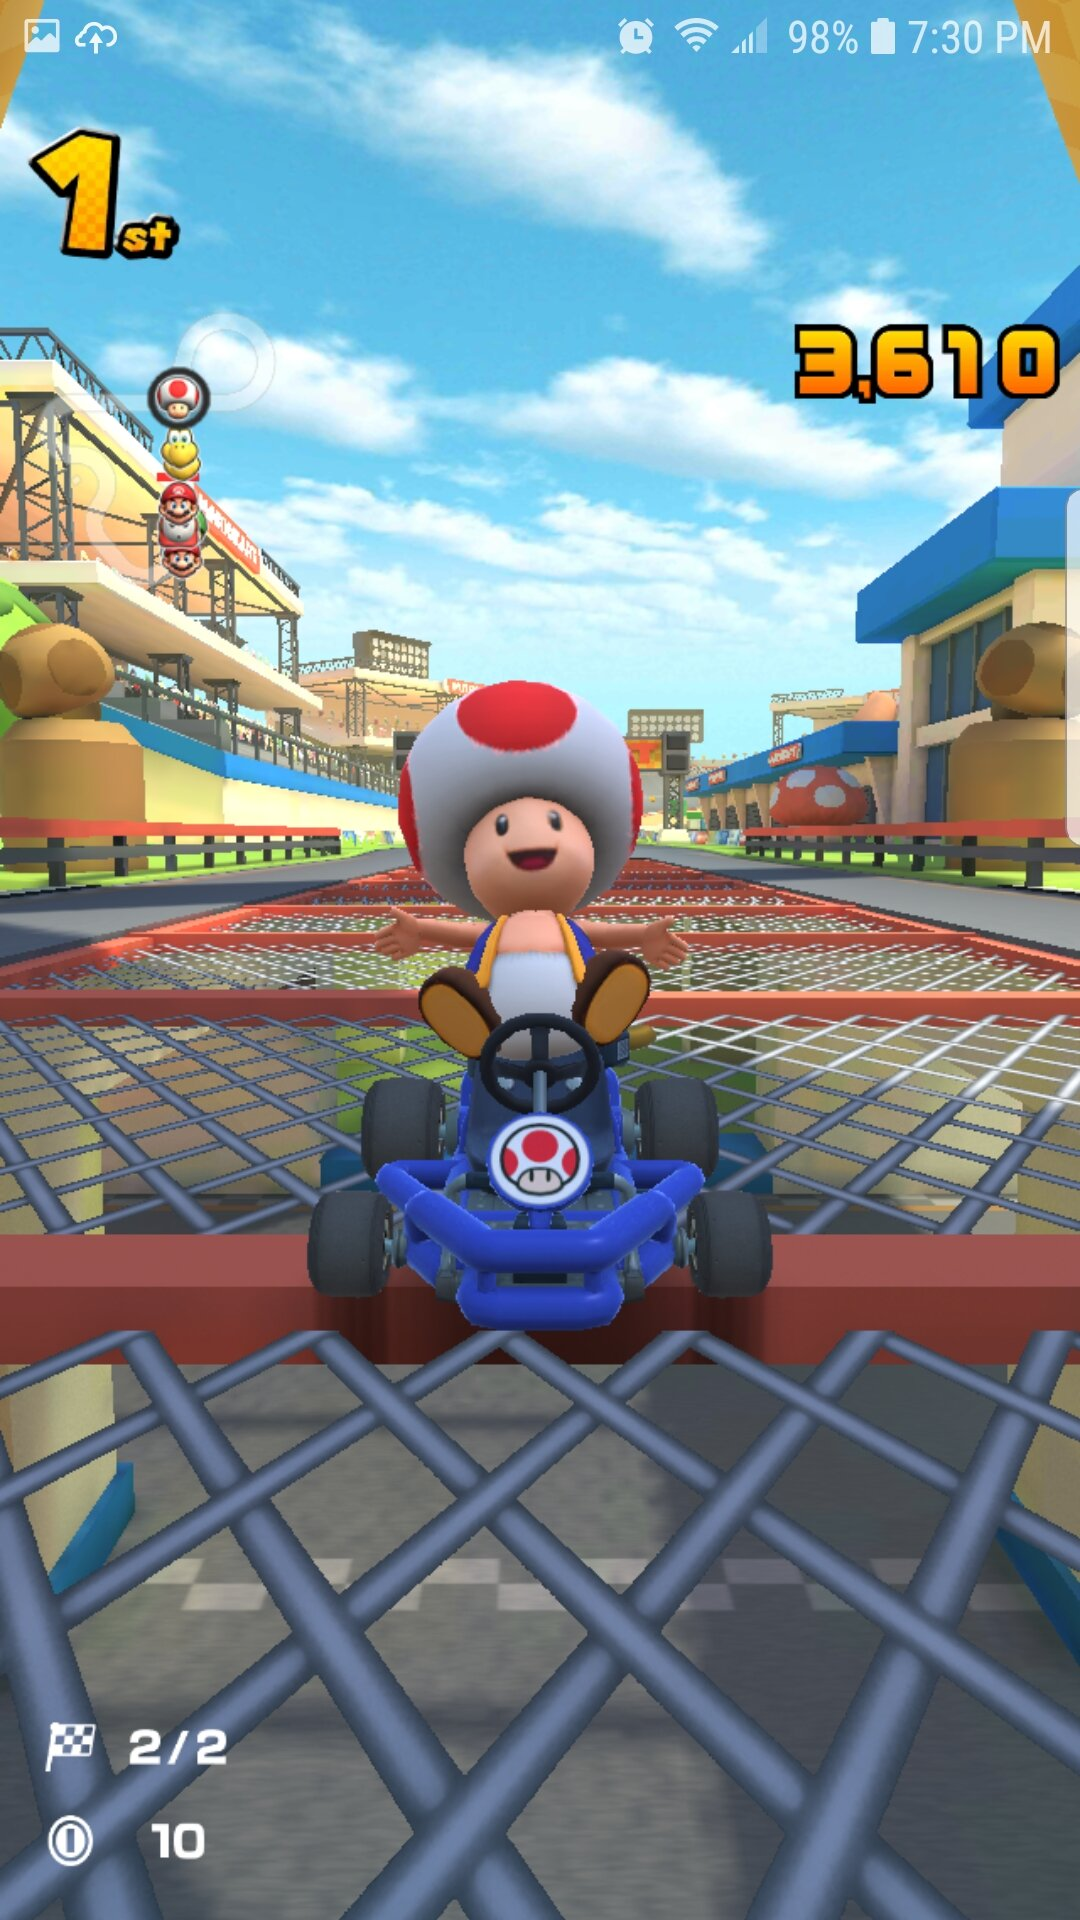 Mario Kart Tour Blog Xor Data Recovery And Cybersecurity